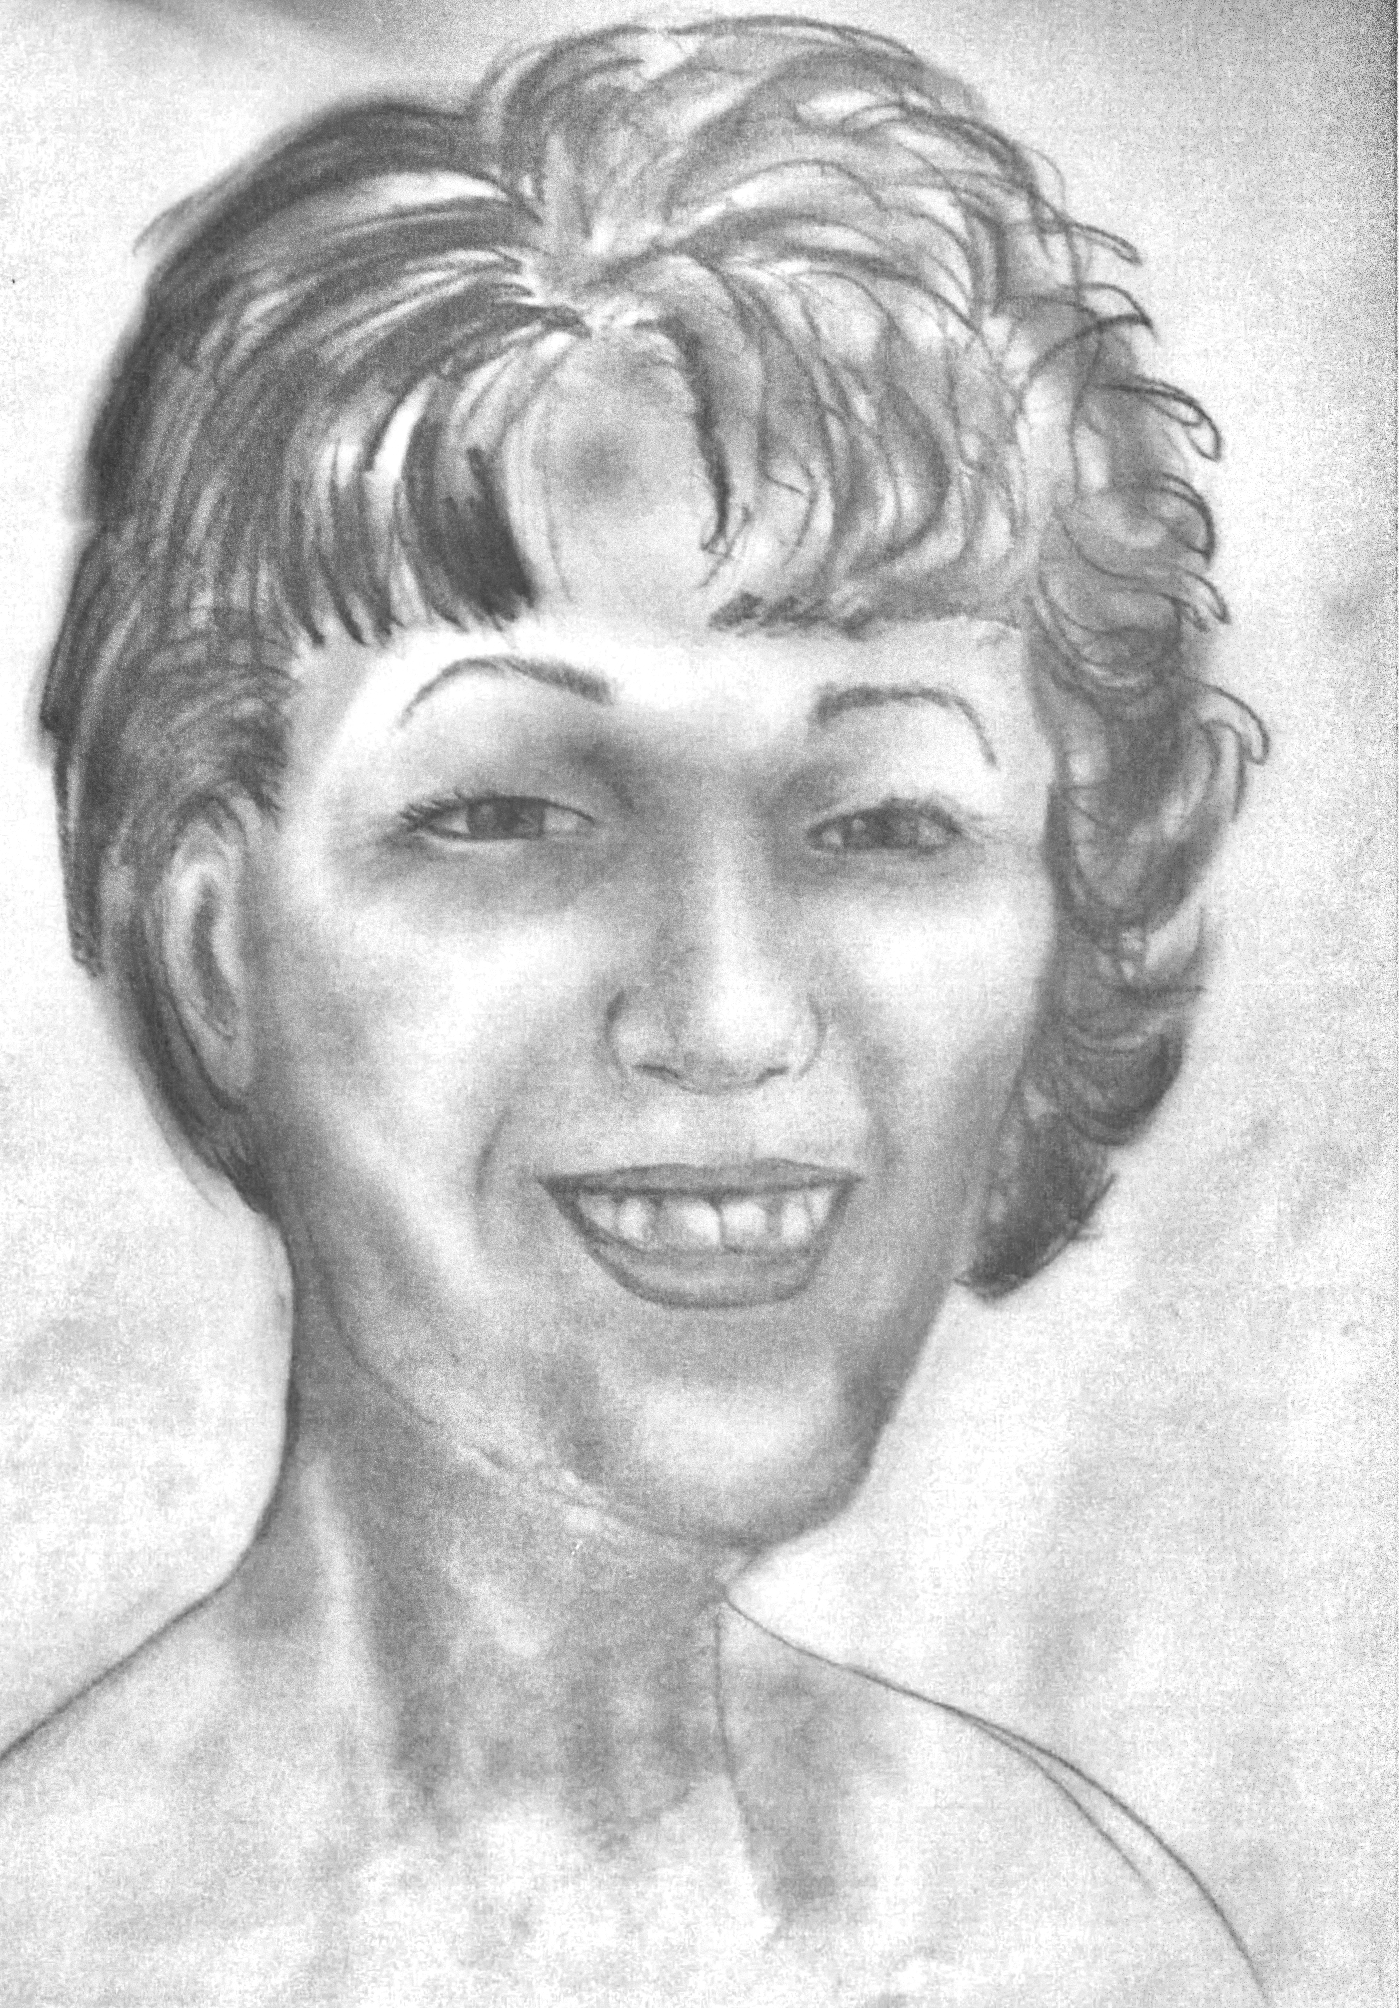 Contra Costa County Jane Doe (1993)